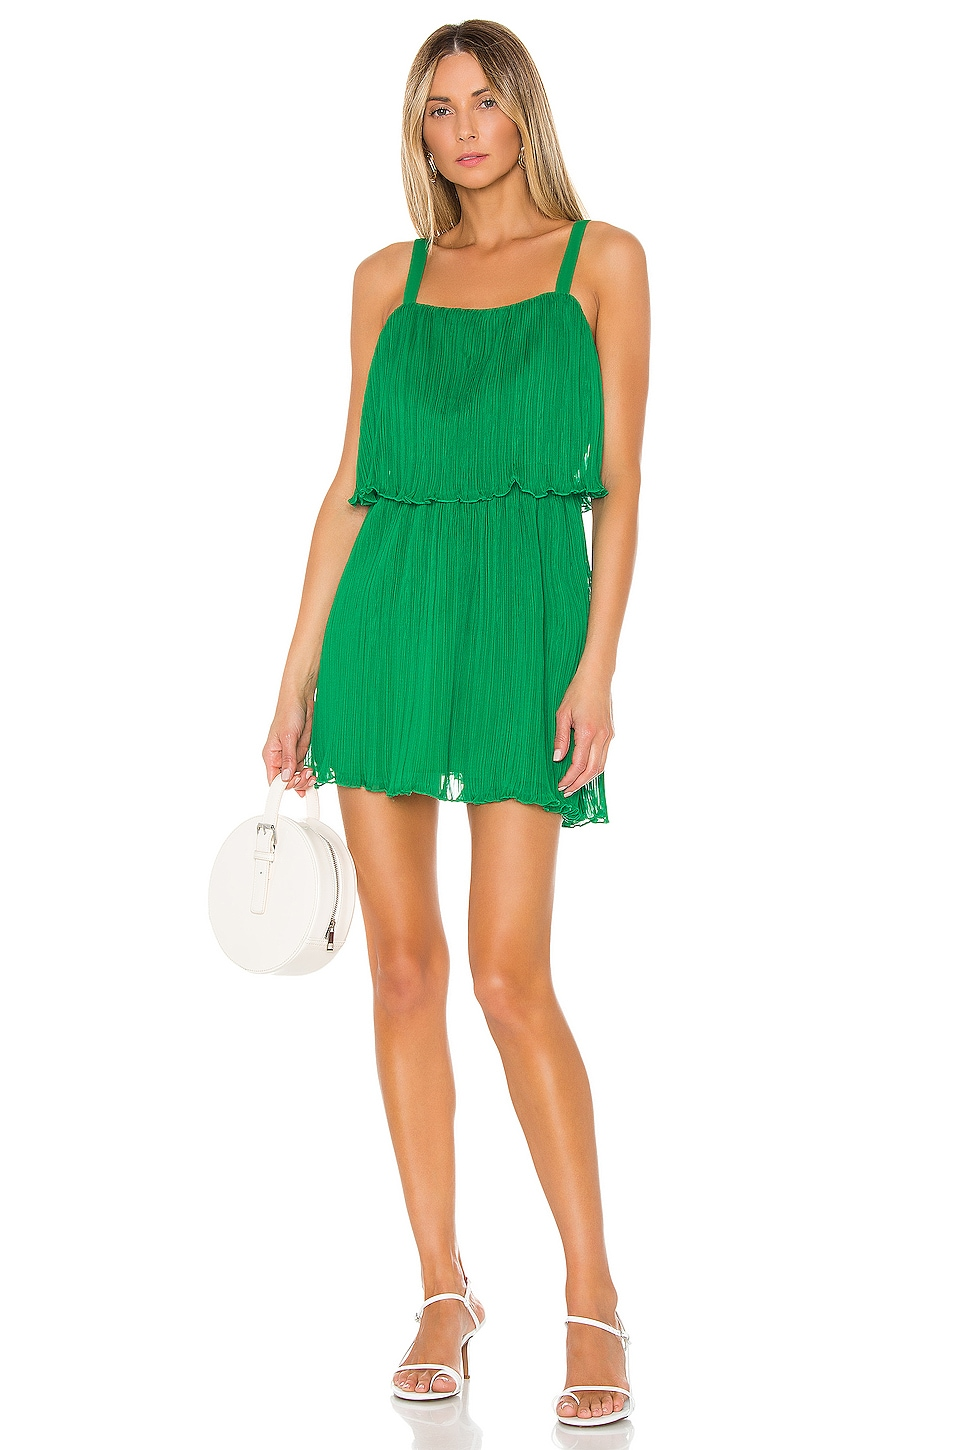 House of Harlow 1960 X REVOLVE Oakley Dress in Kelly Green